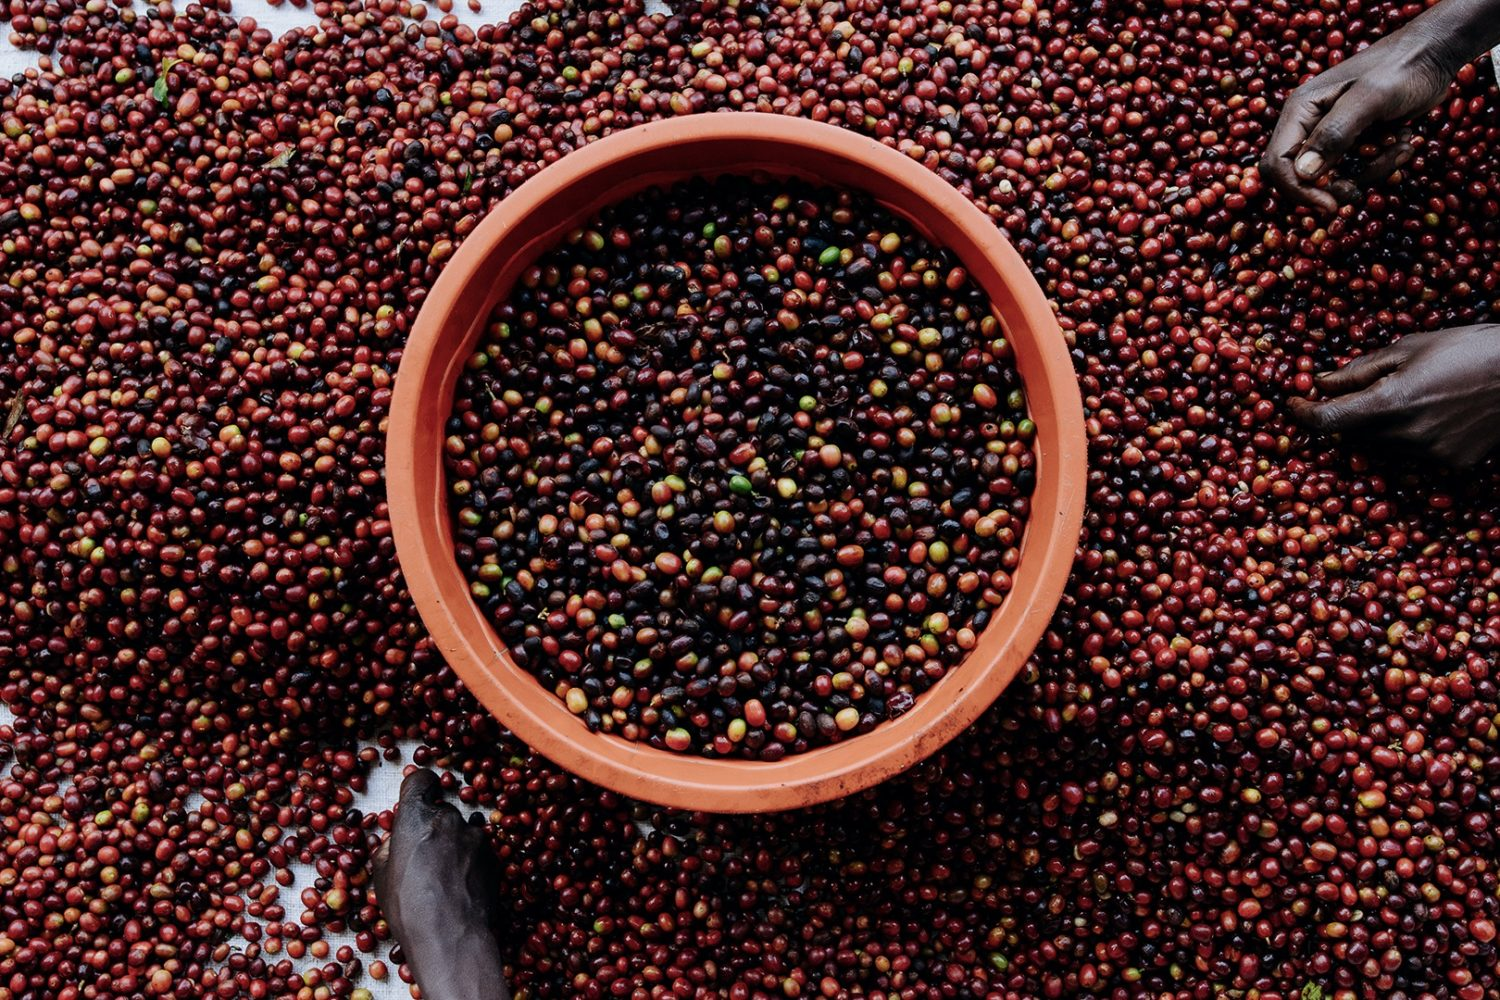 Licensing Contributor Aidan Campbell on documenting the coffee production process in Rwanda